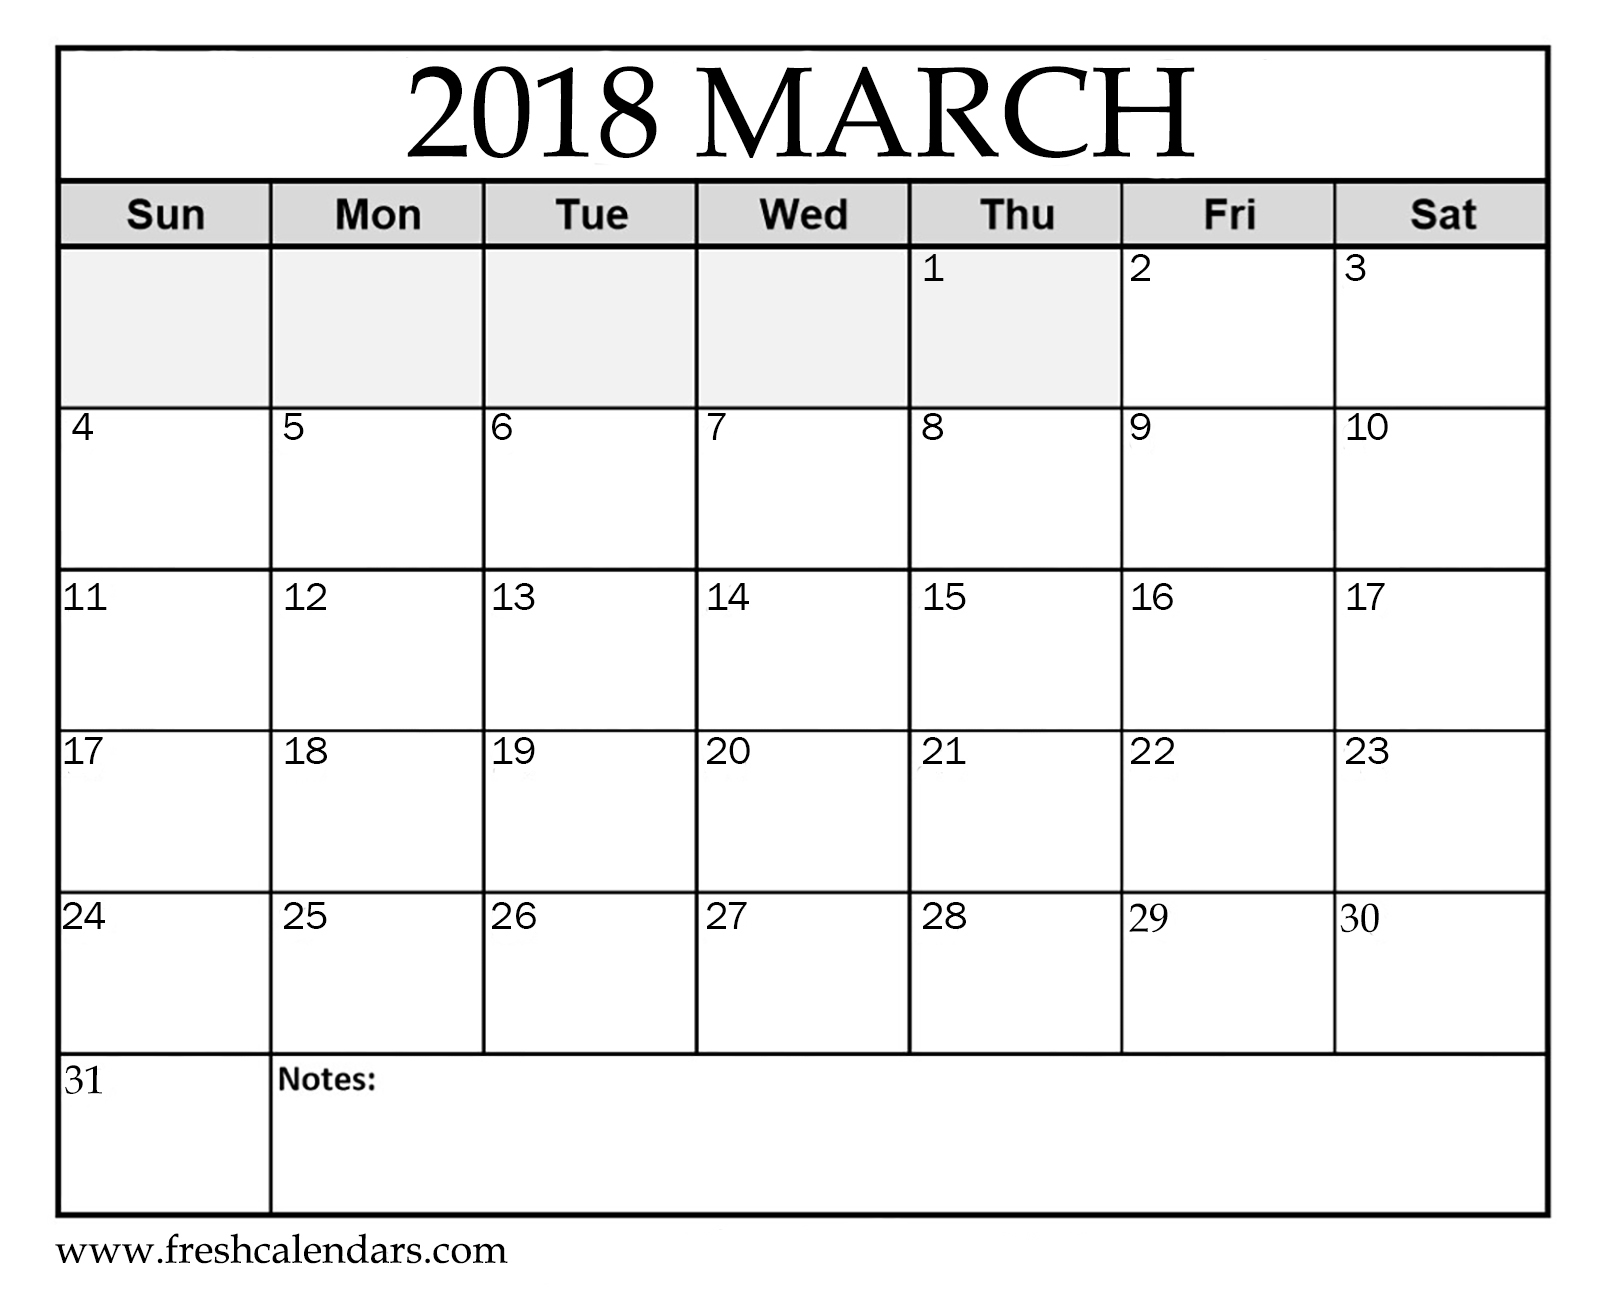 march 2018 calendar printable word pdf format with notes